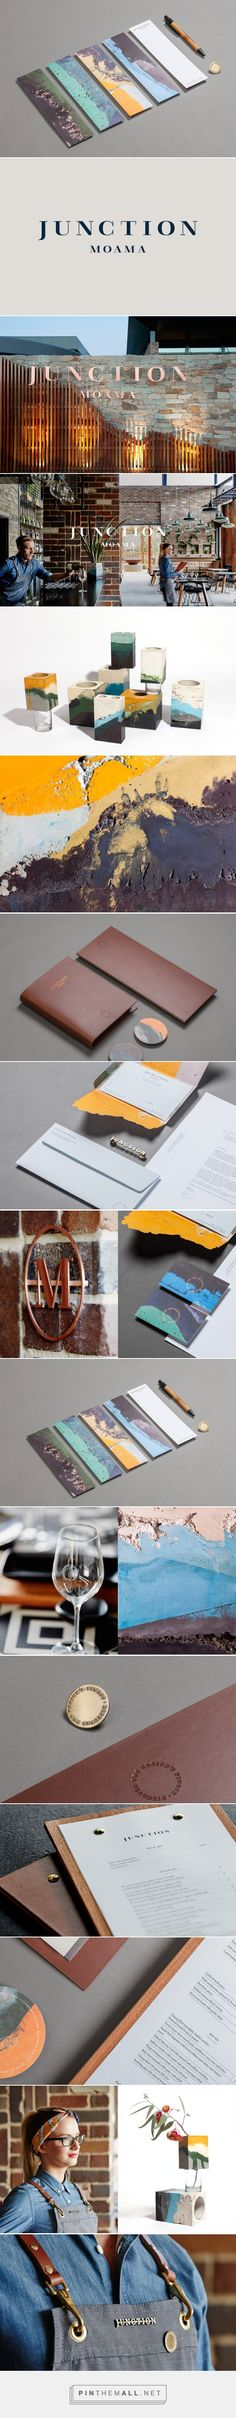 New Visual Identity for Junction Moama by Seesaw — BP&O - created via http://pinthemall.net